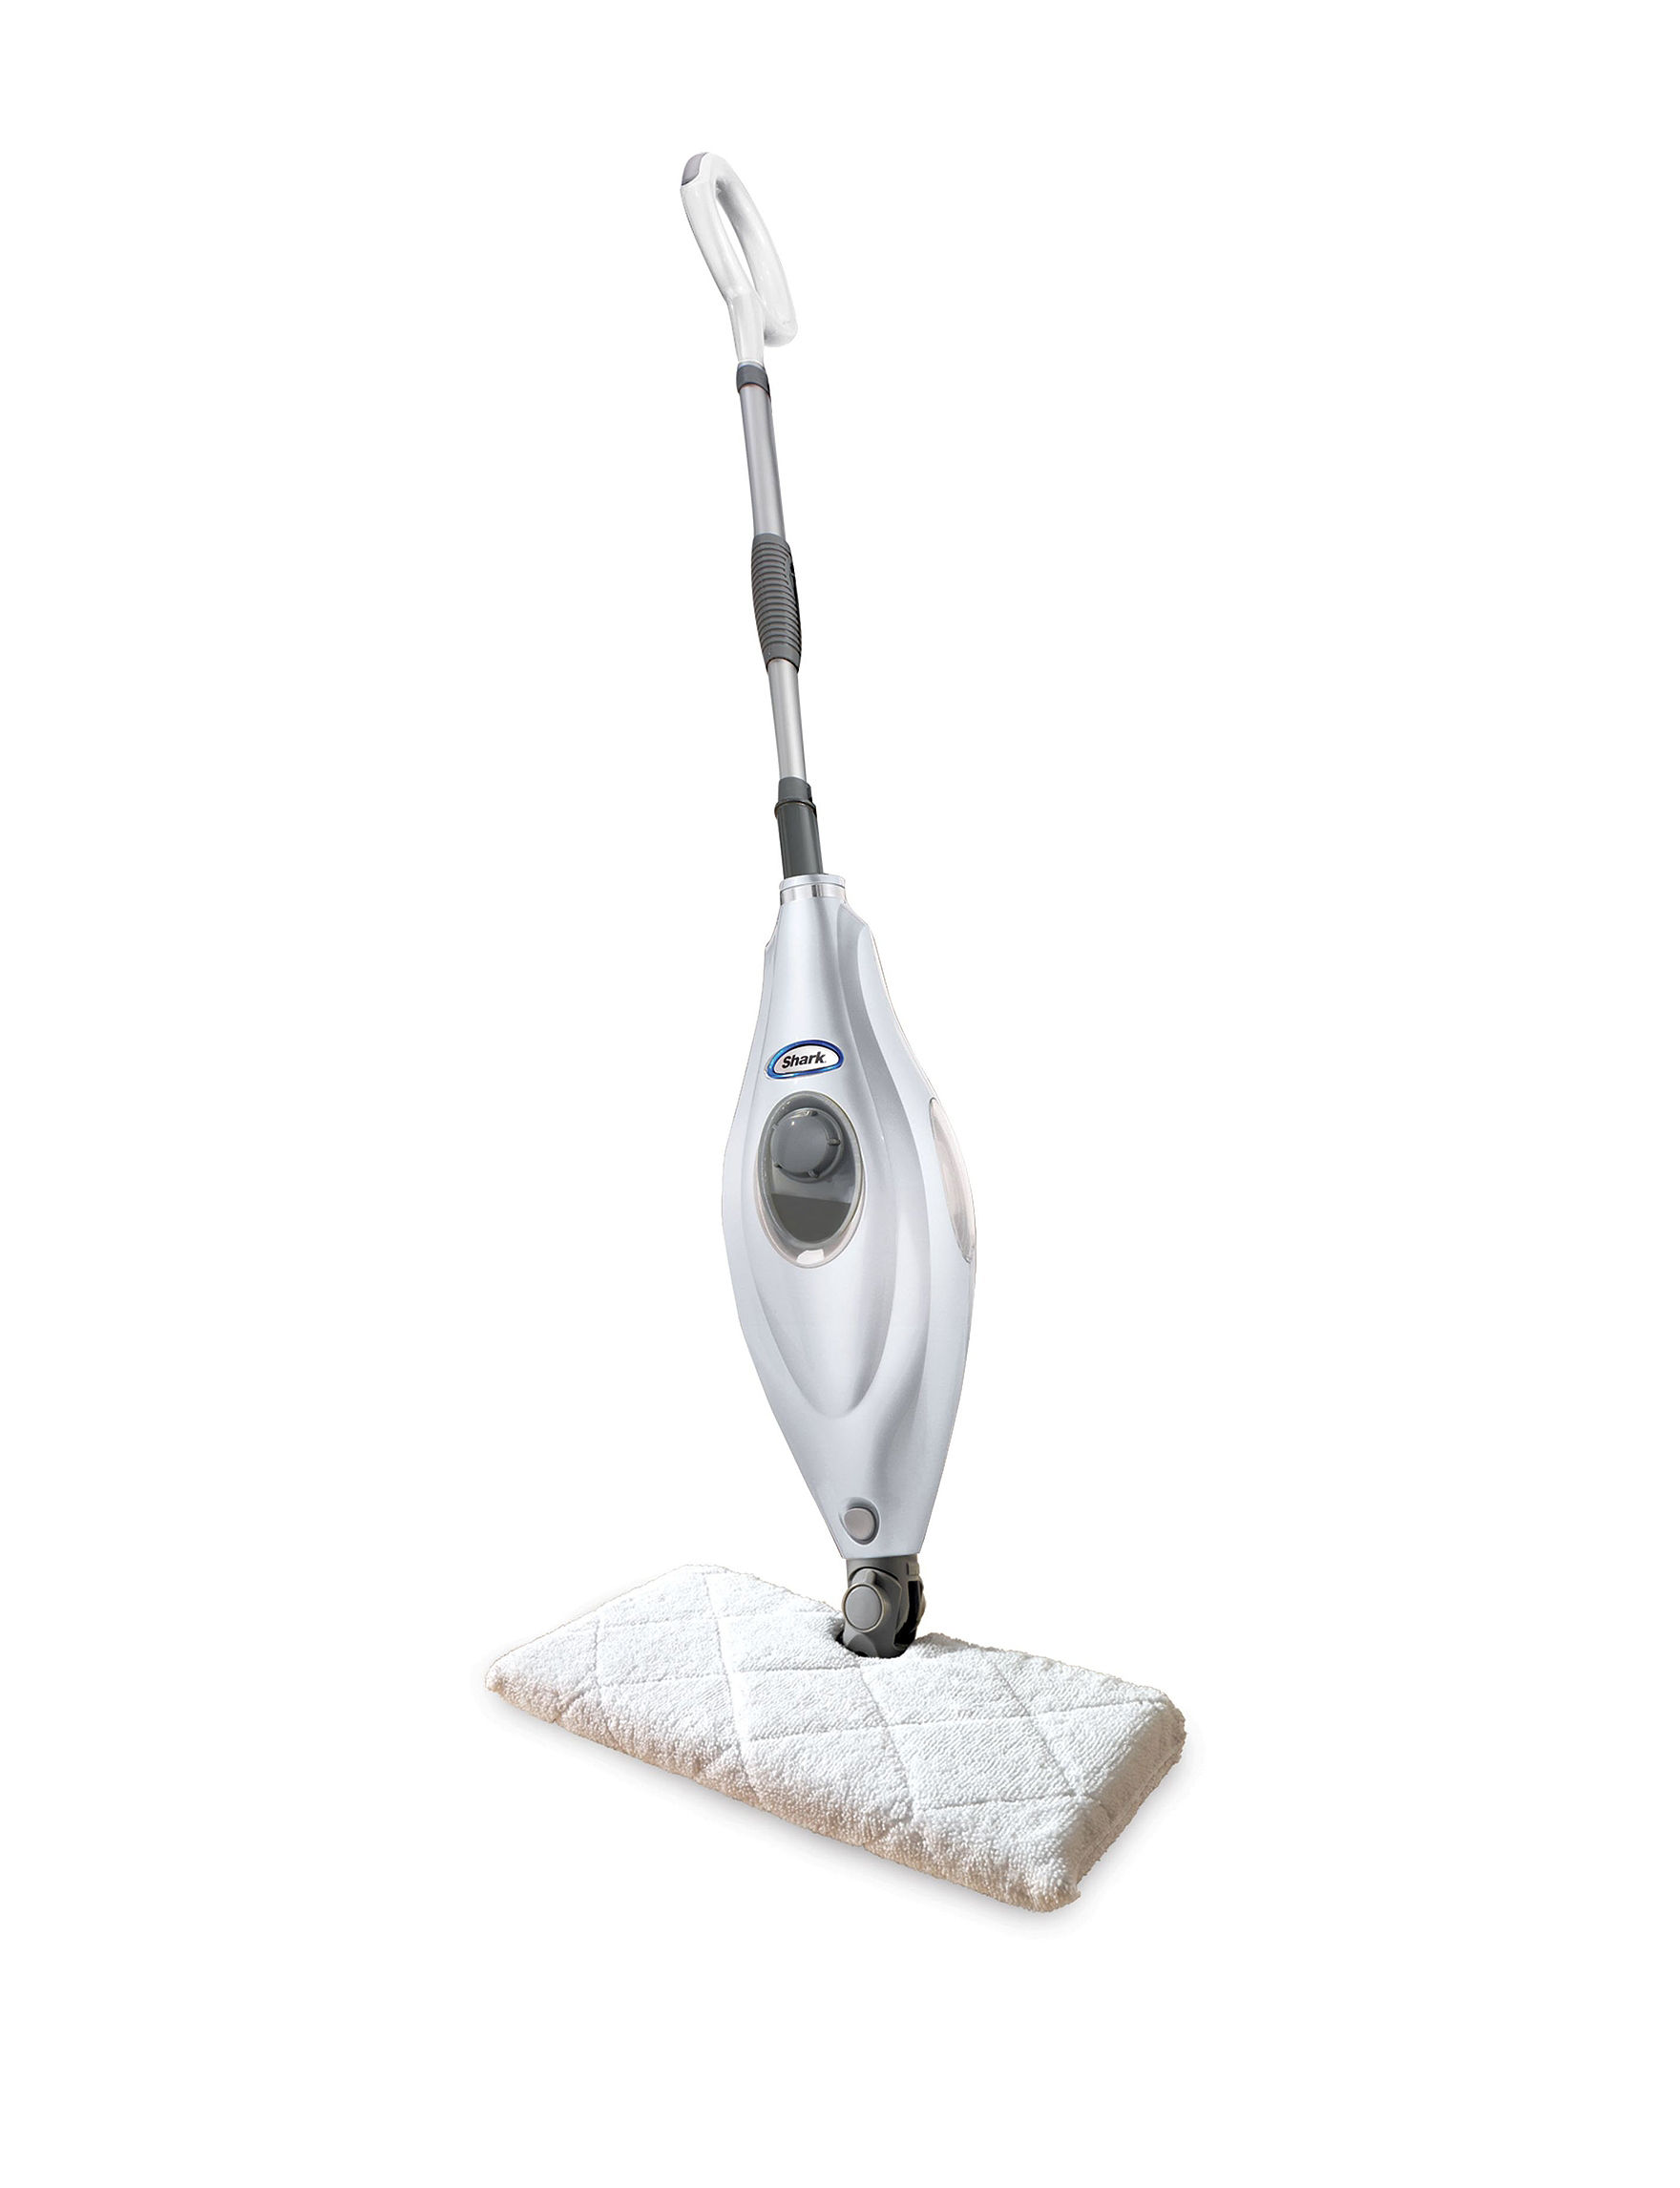 Shark White Vacuums & Floor Care